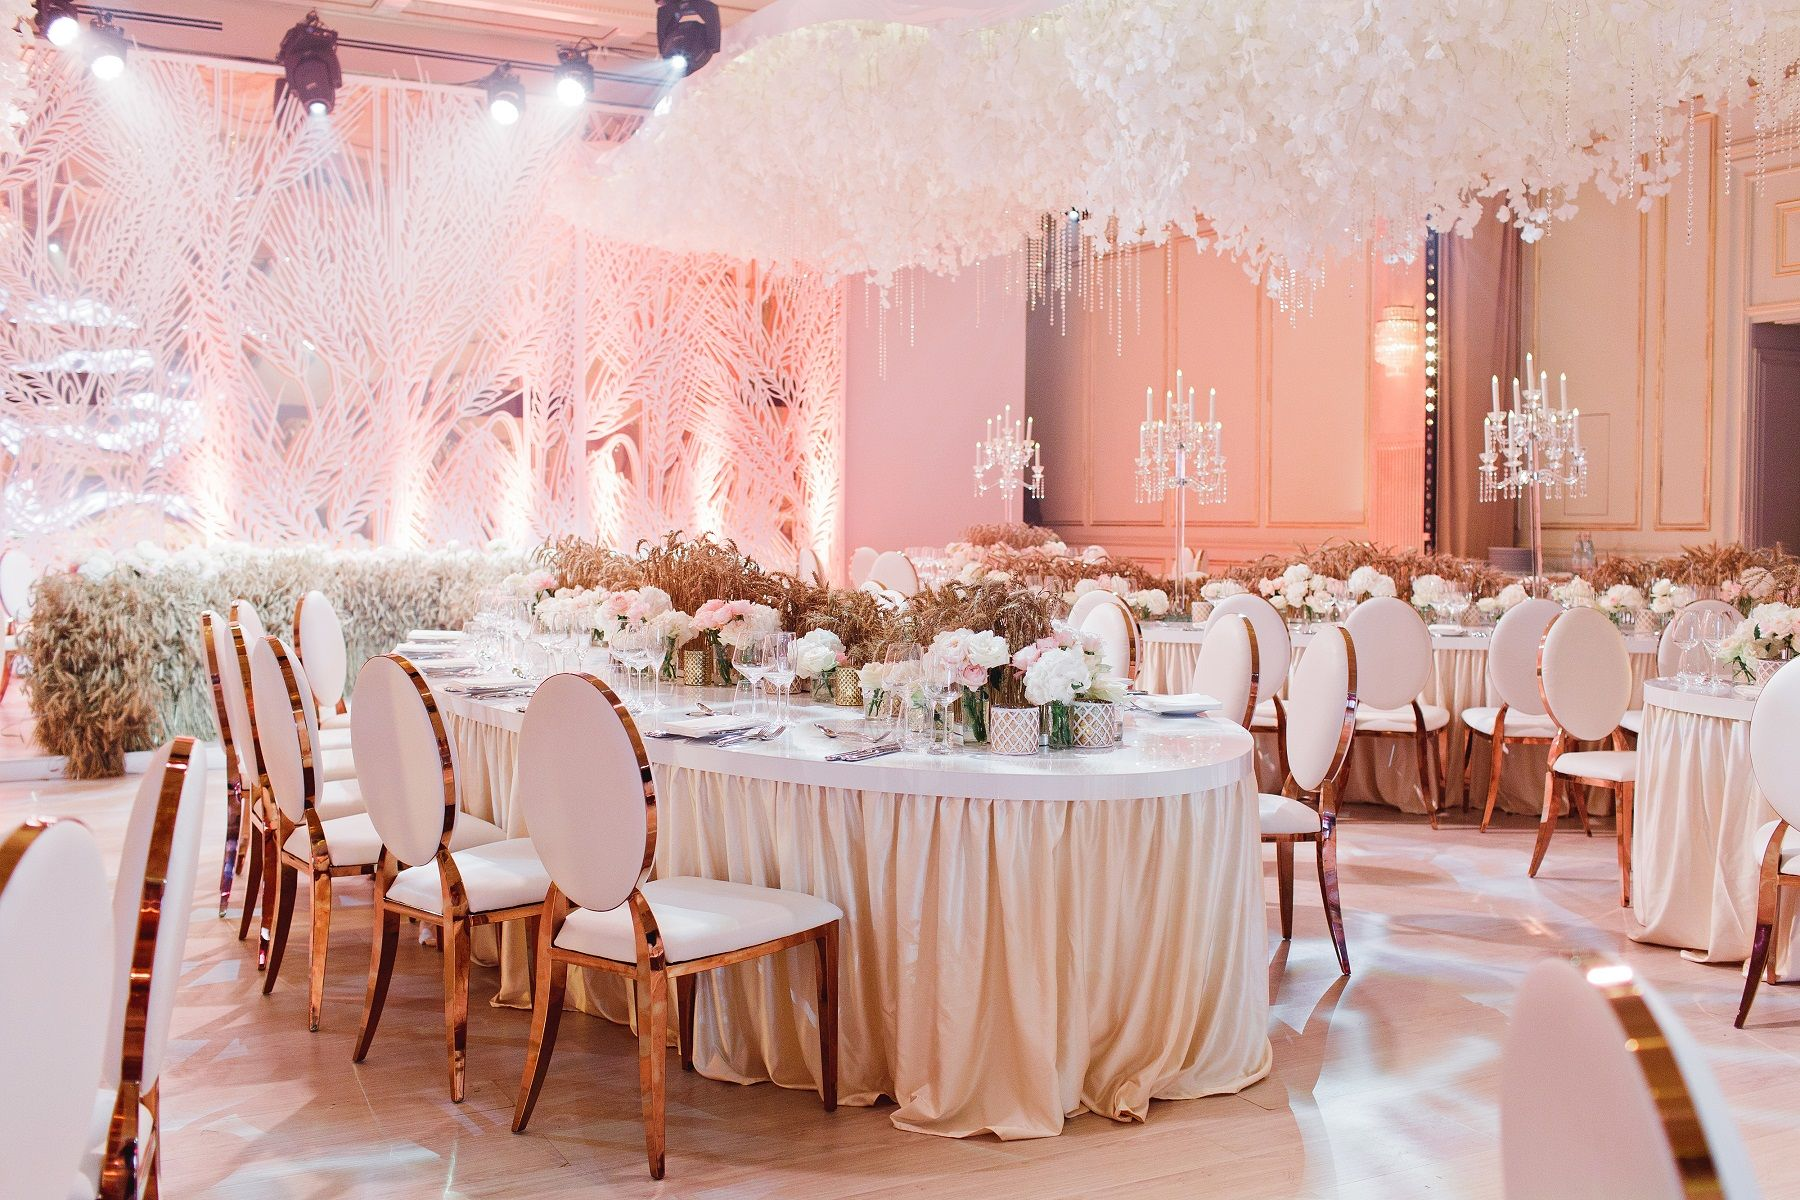 Wedding decor grain classic style | Grain wedding | Pinterest ...